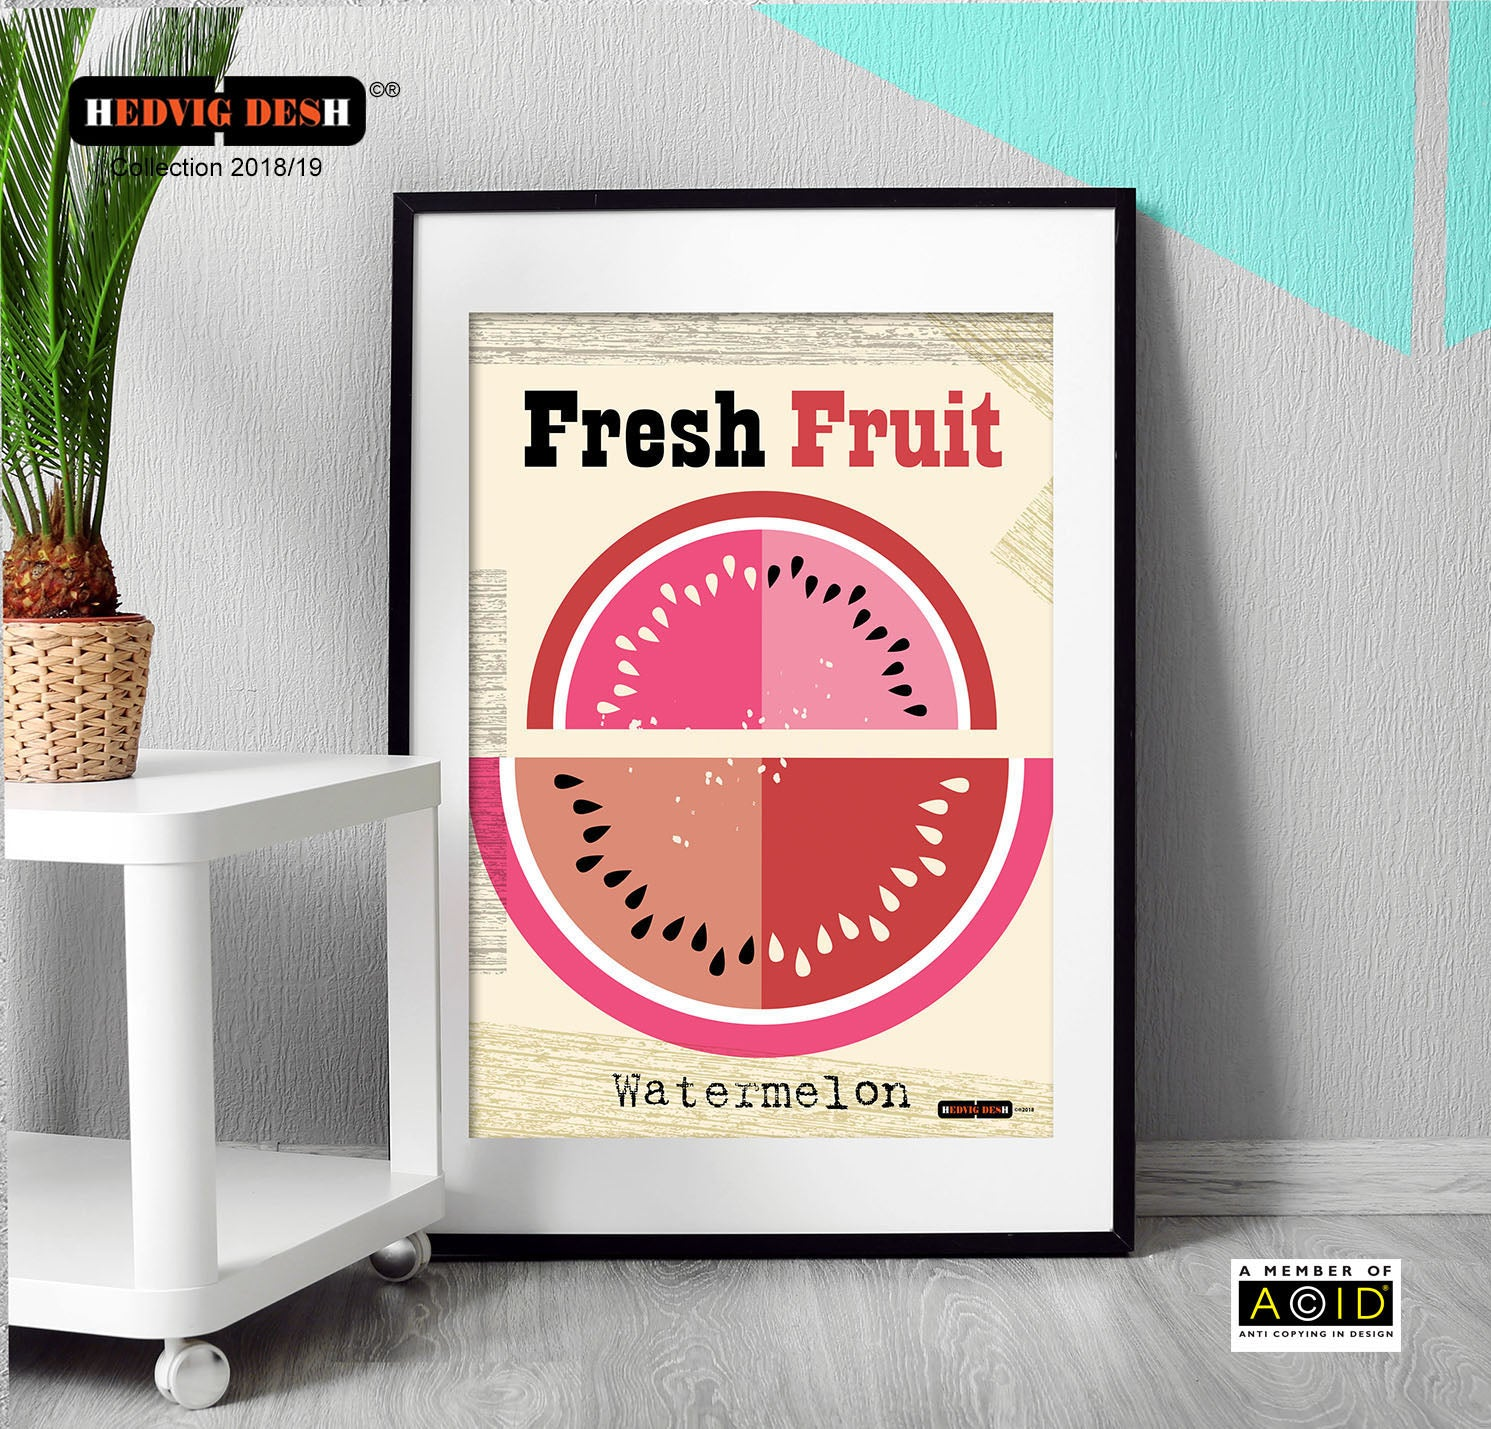 'WATERMELON' Fresh fruit melon juicy Hedvig Desh collection retro mid century Scandinavian kitchen Nordic illustration gallery art print - 'Unframed'